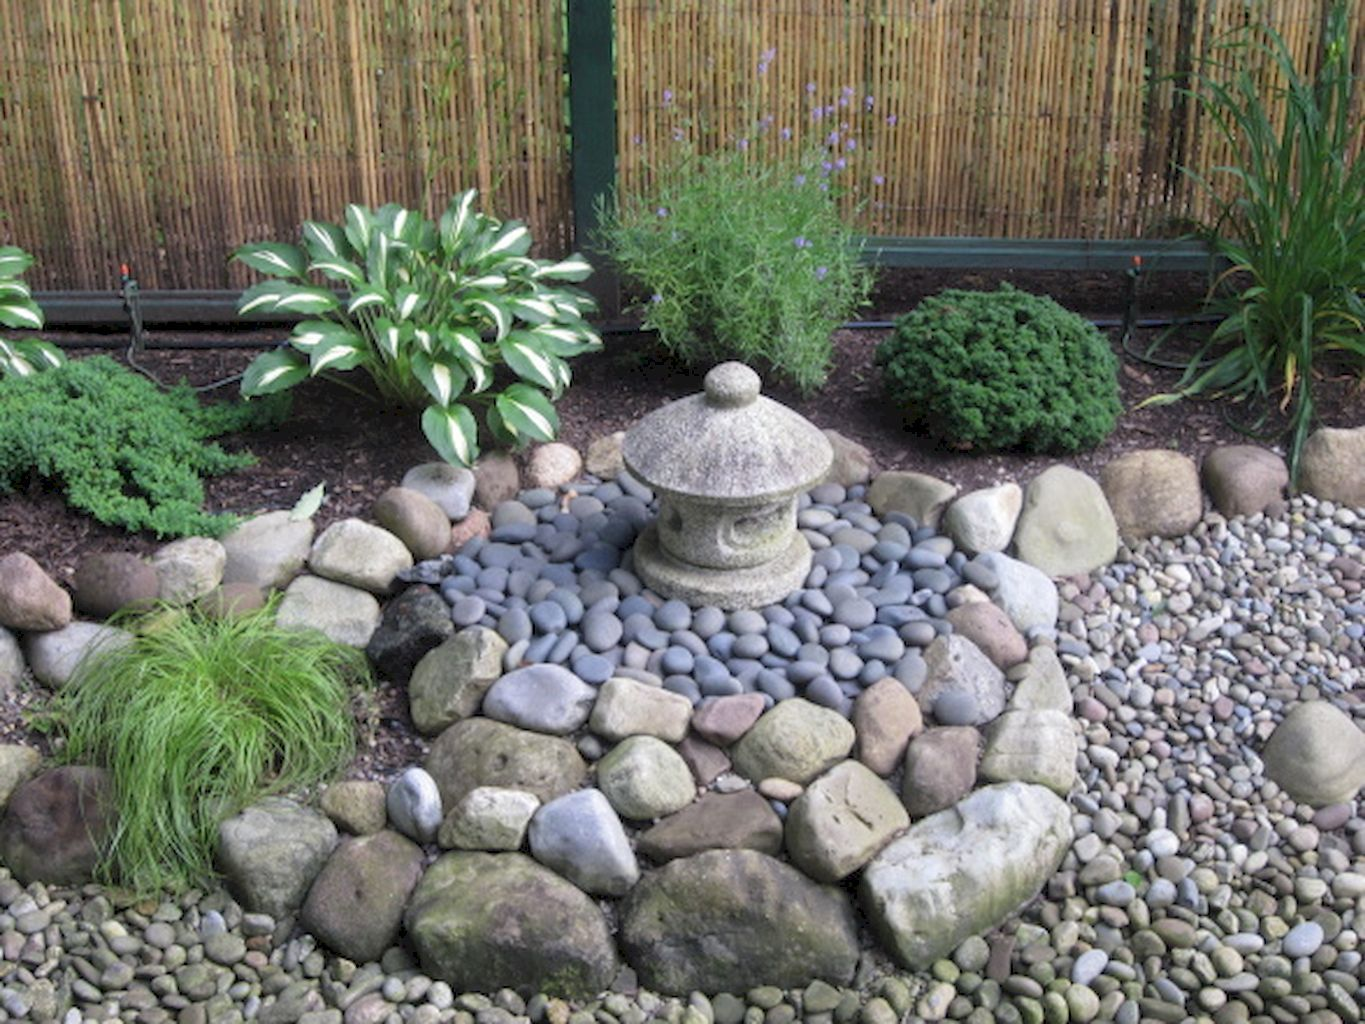 Awesome 77 Fabulous Rock Garden Ideas For Backyard And Front Yard Decorapatio Com Japanese Rock Garden Small Japanese Garden Rock Garden Design